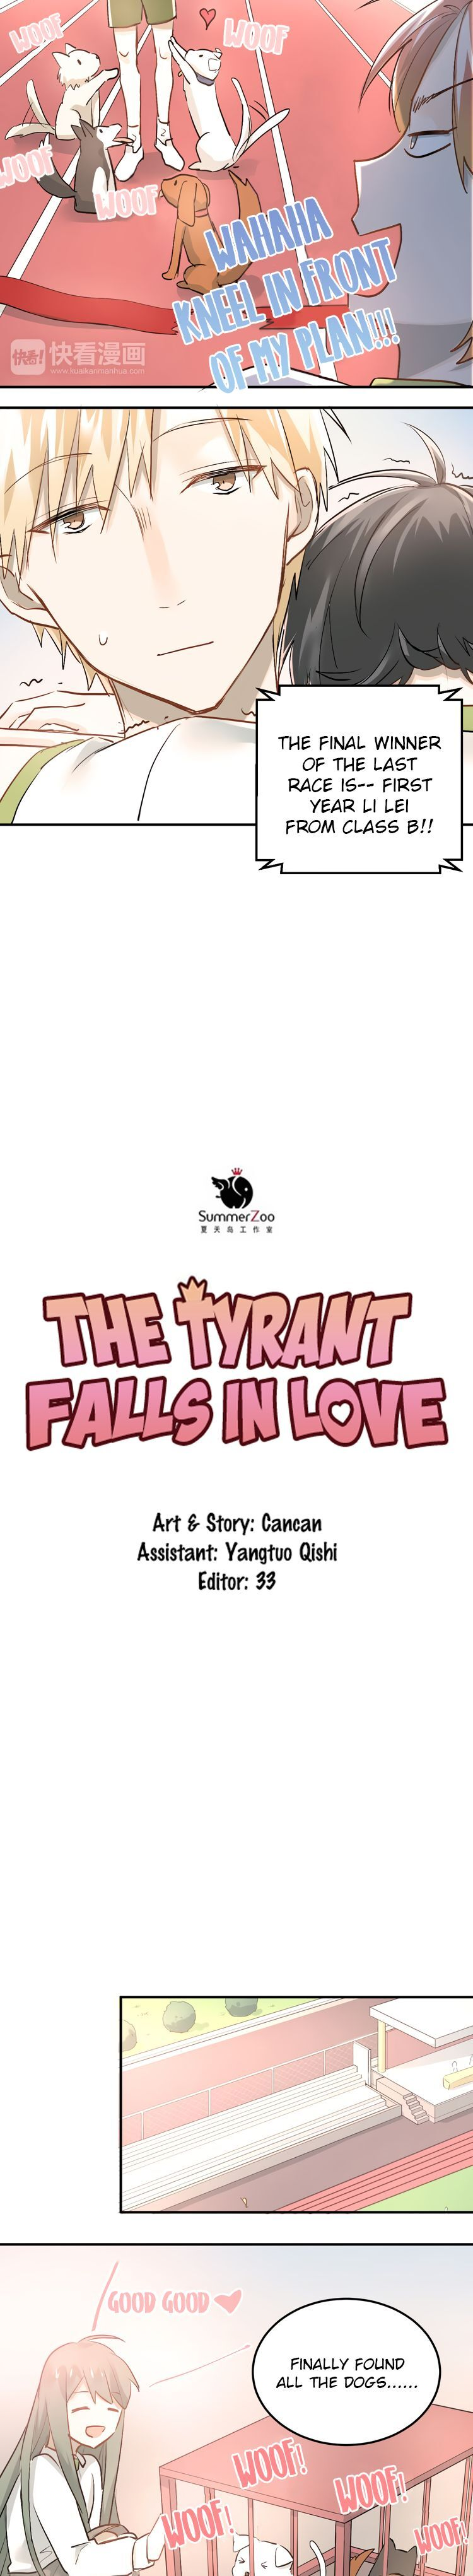 The Tyrant Falls in Love (Can Can) 13 Page 5